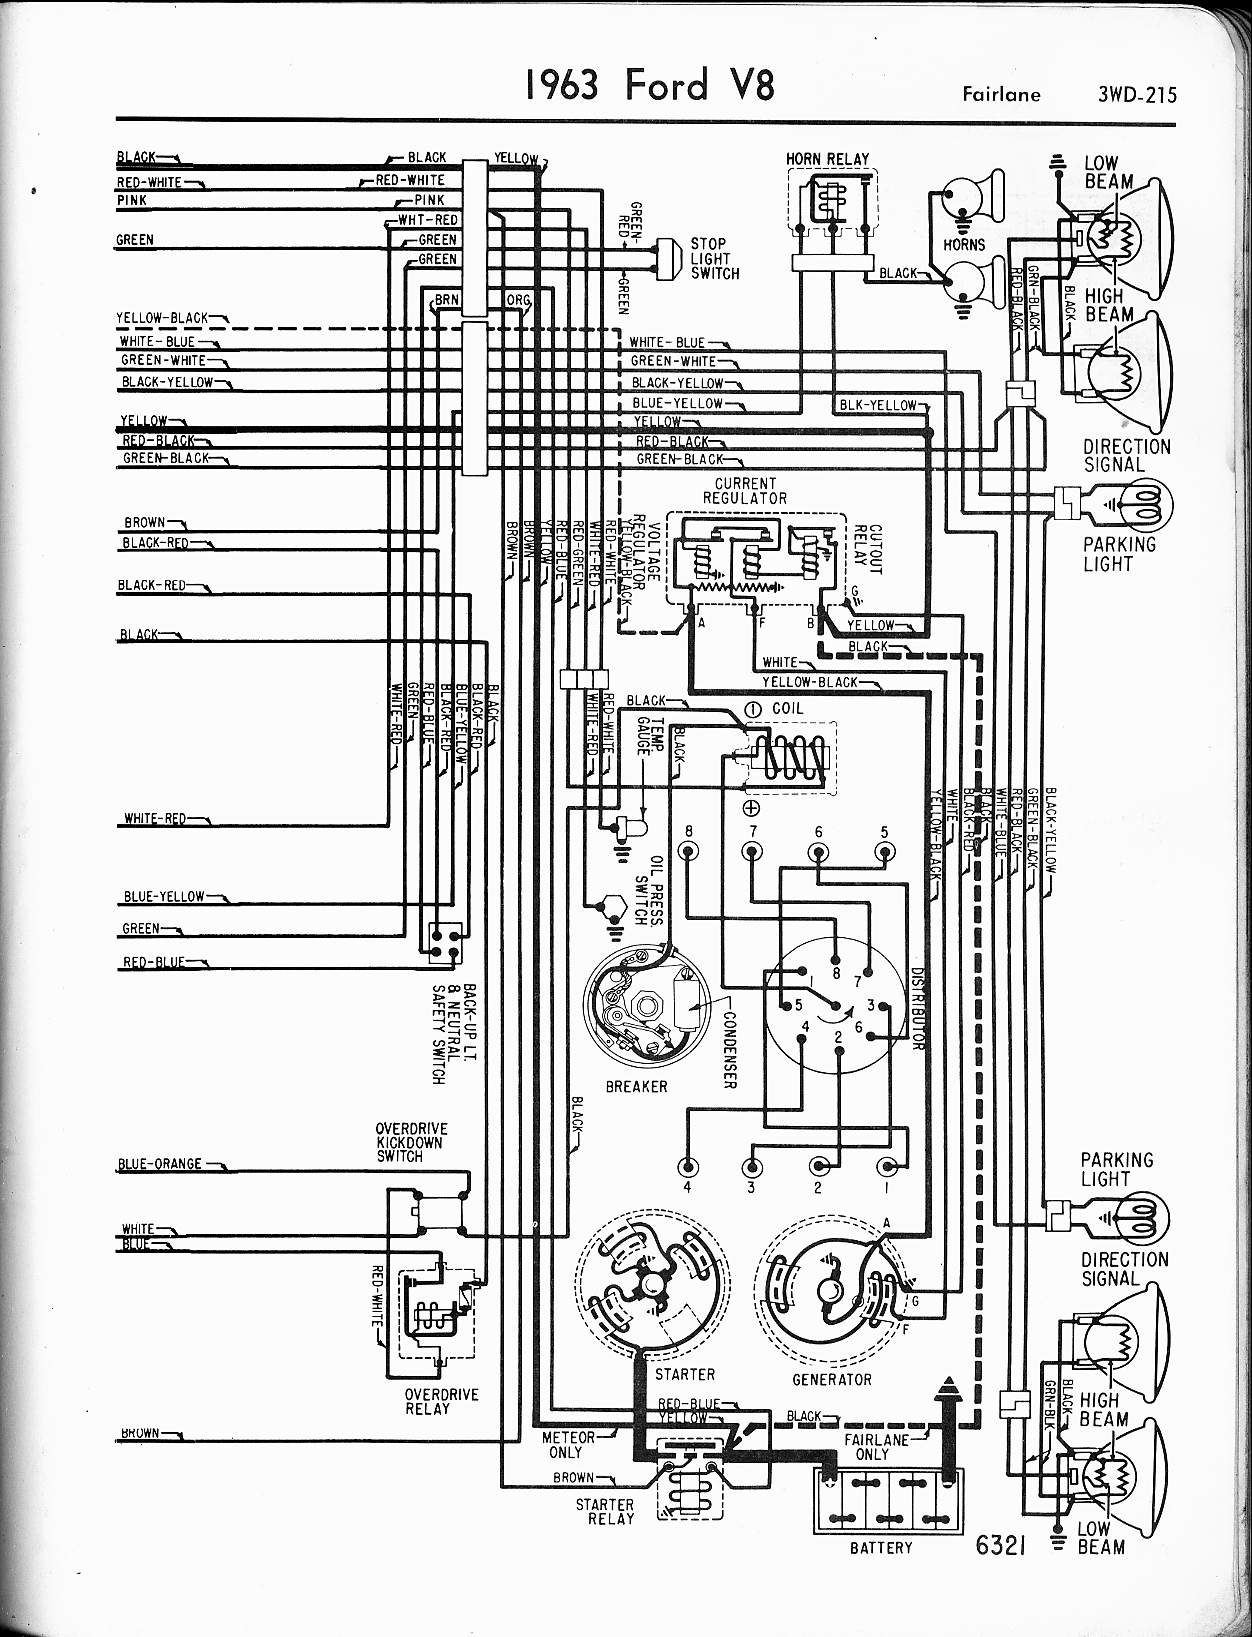 1956 Ford Wiring Diagram Diagrams 72 Oldsmobile 57 65 56 Thunderbird